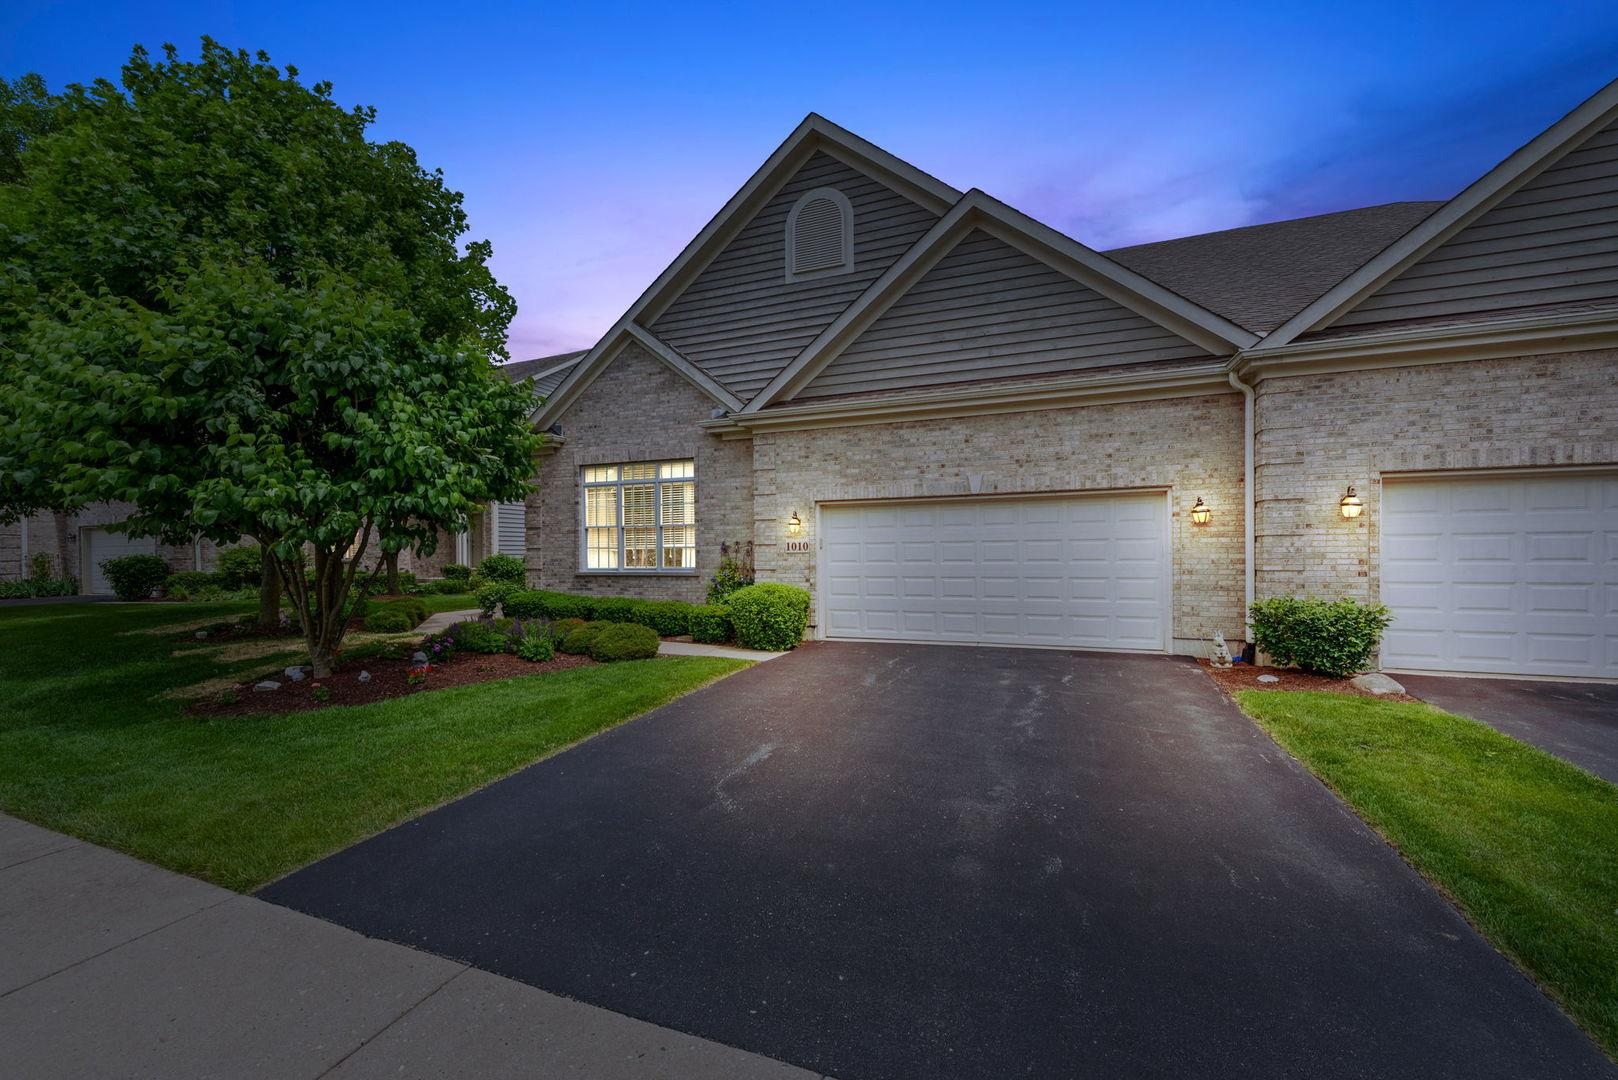 1010 Harrow Gate Drive, Woodstock, IL 60098 - #: 10780047